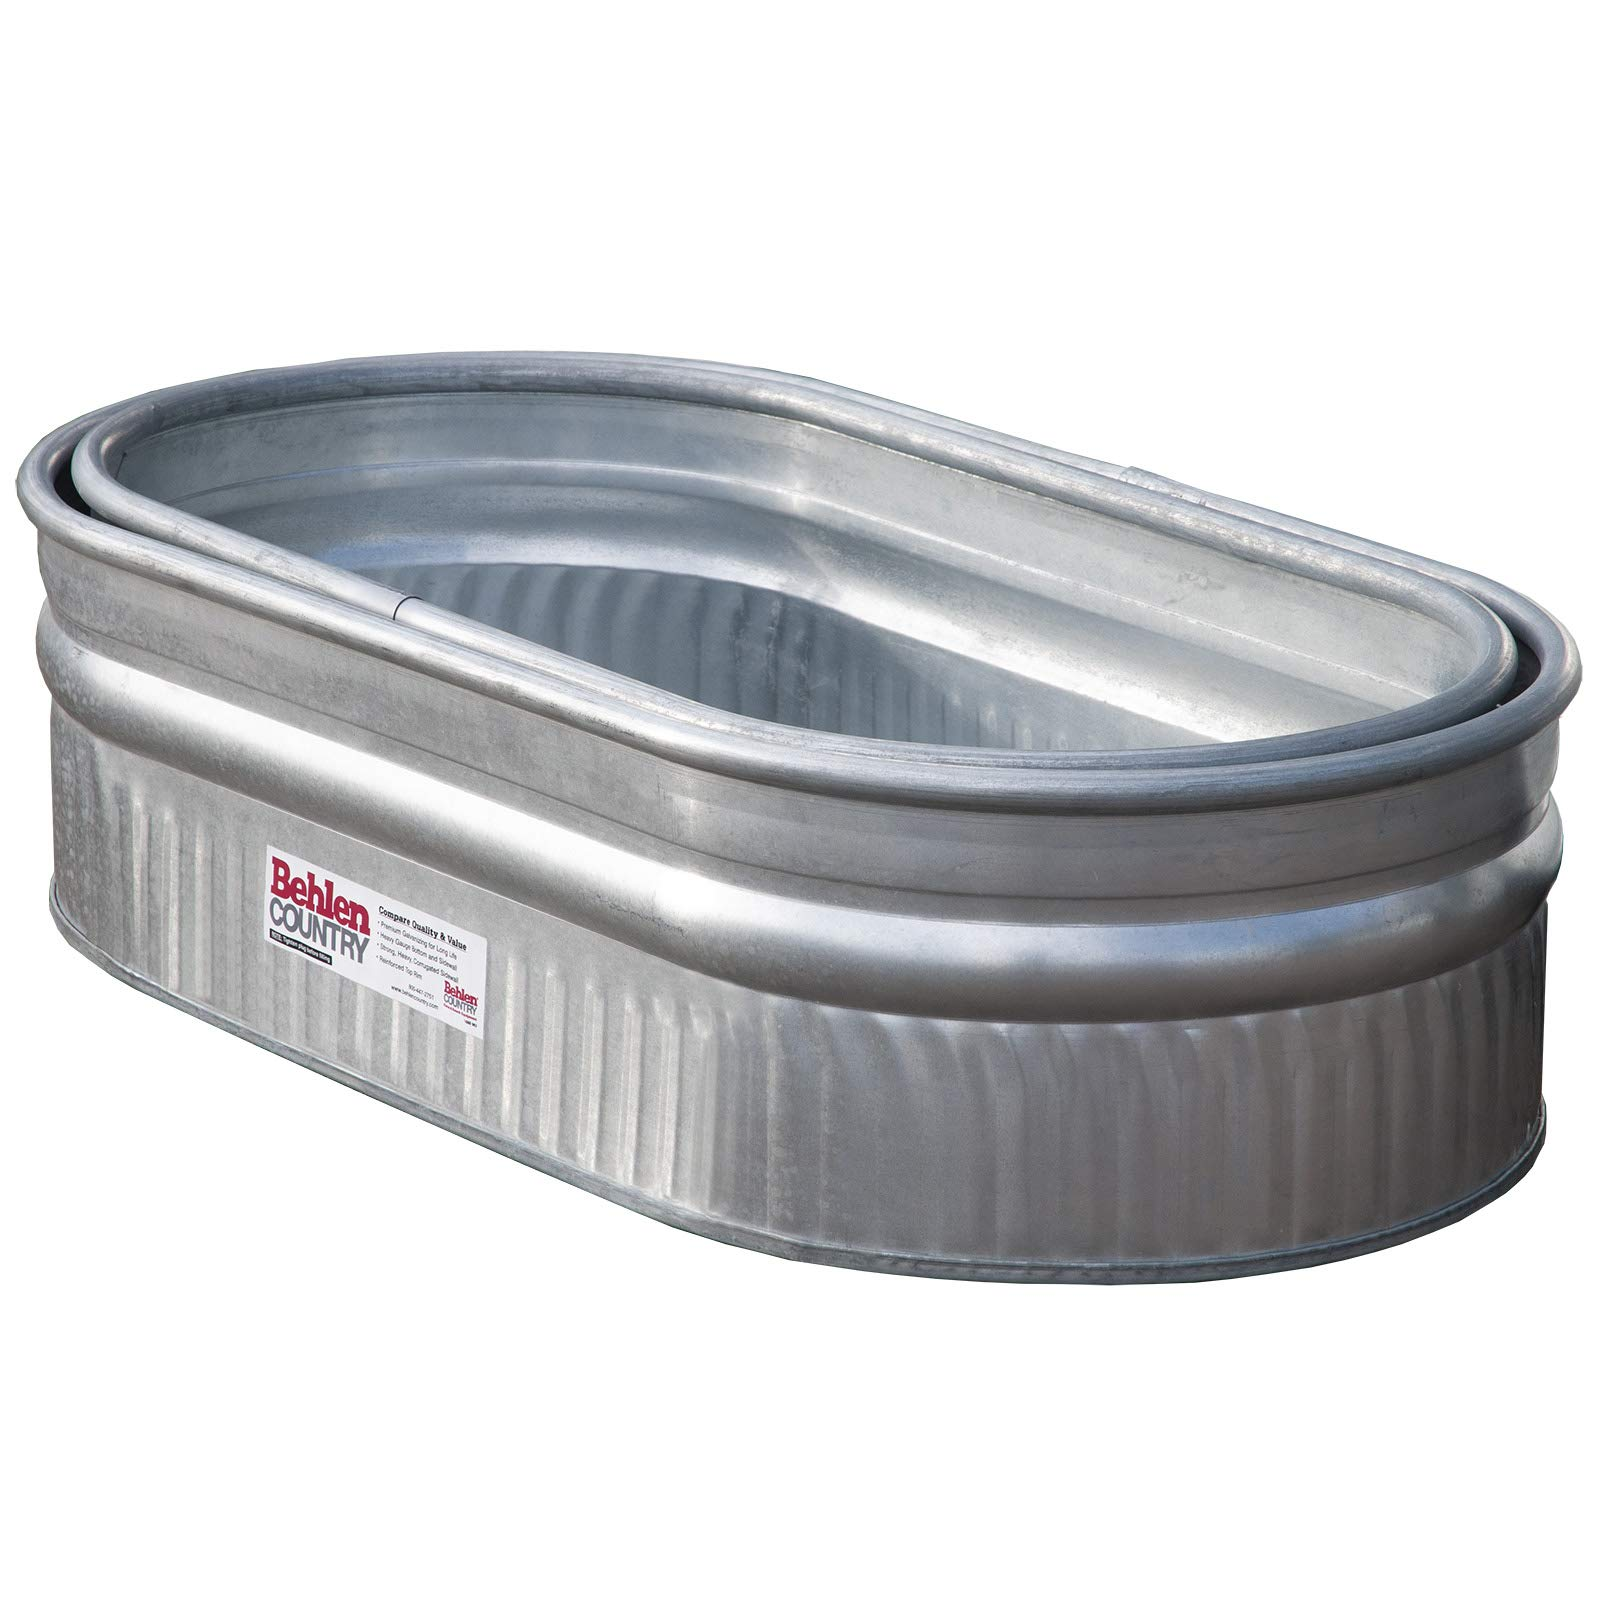 Behlen Country 50130198K 2' x 1' x 4' Round-End Galvanized Steel Stock Tank Nested Bundle, Approximately 50 Gallon (Pack of 2 Tanks) by Behlen Country